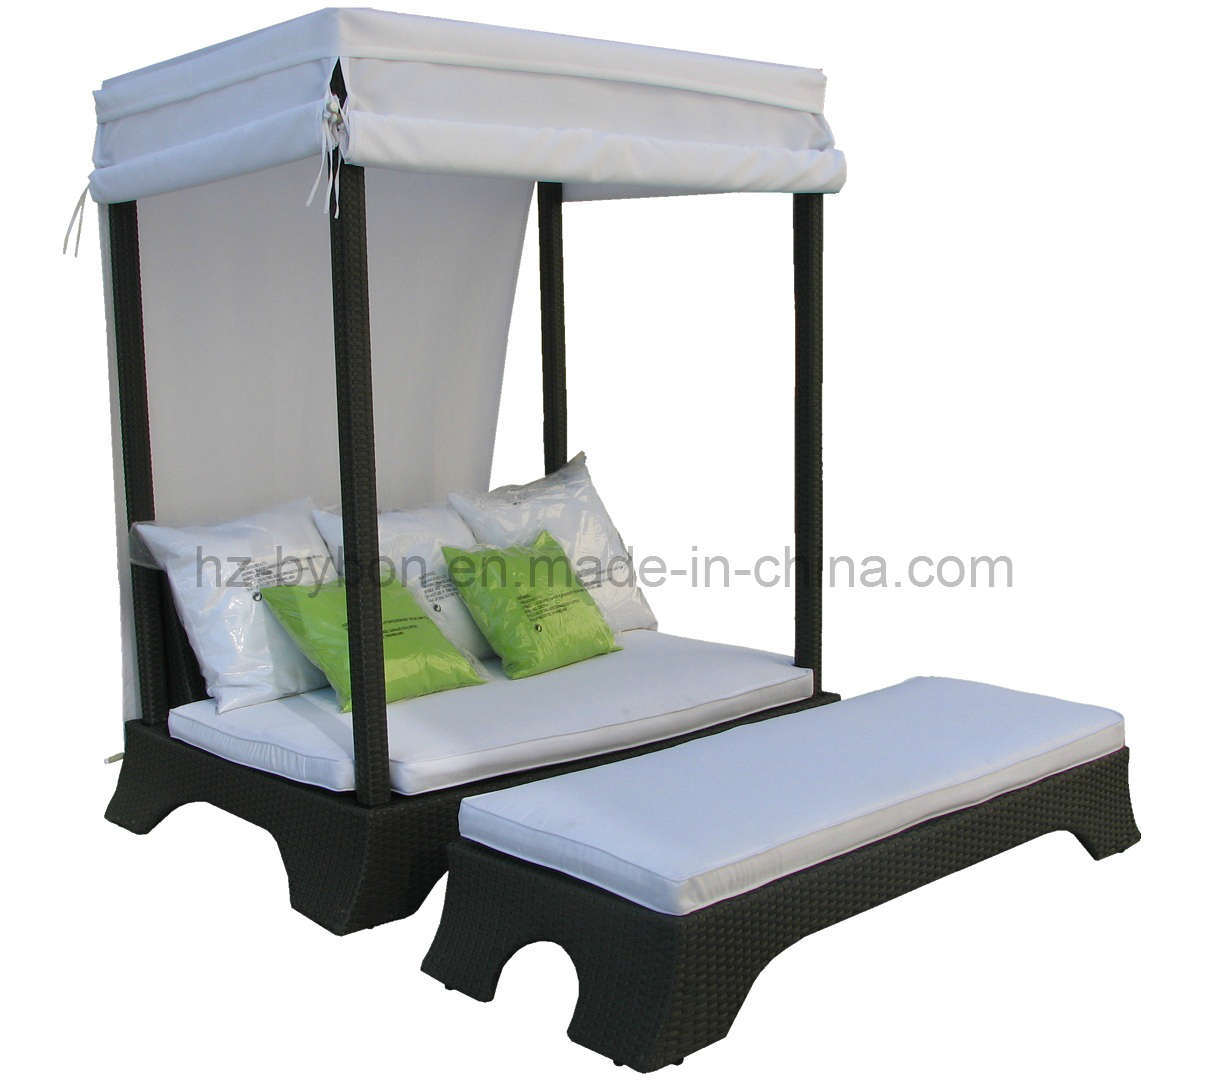 Rattan Daybed Canopy : China pe rattan patio canopy daybed lounger c